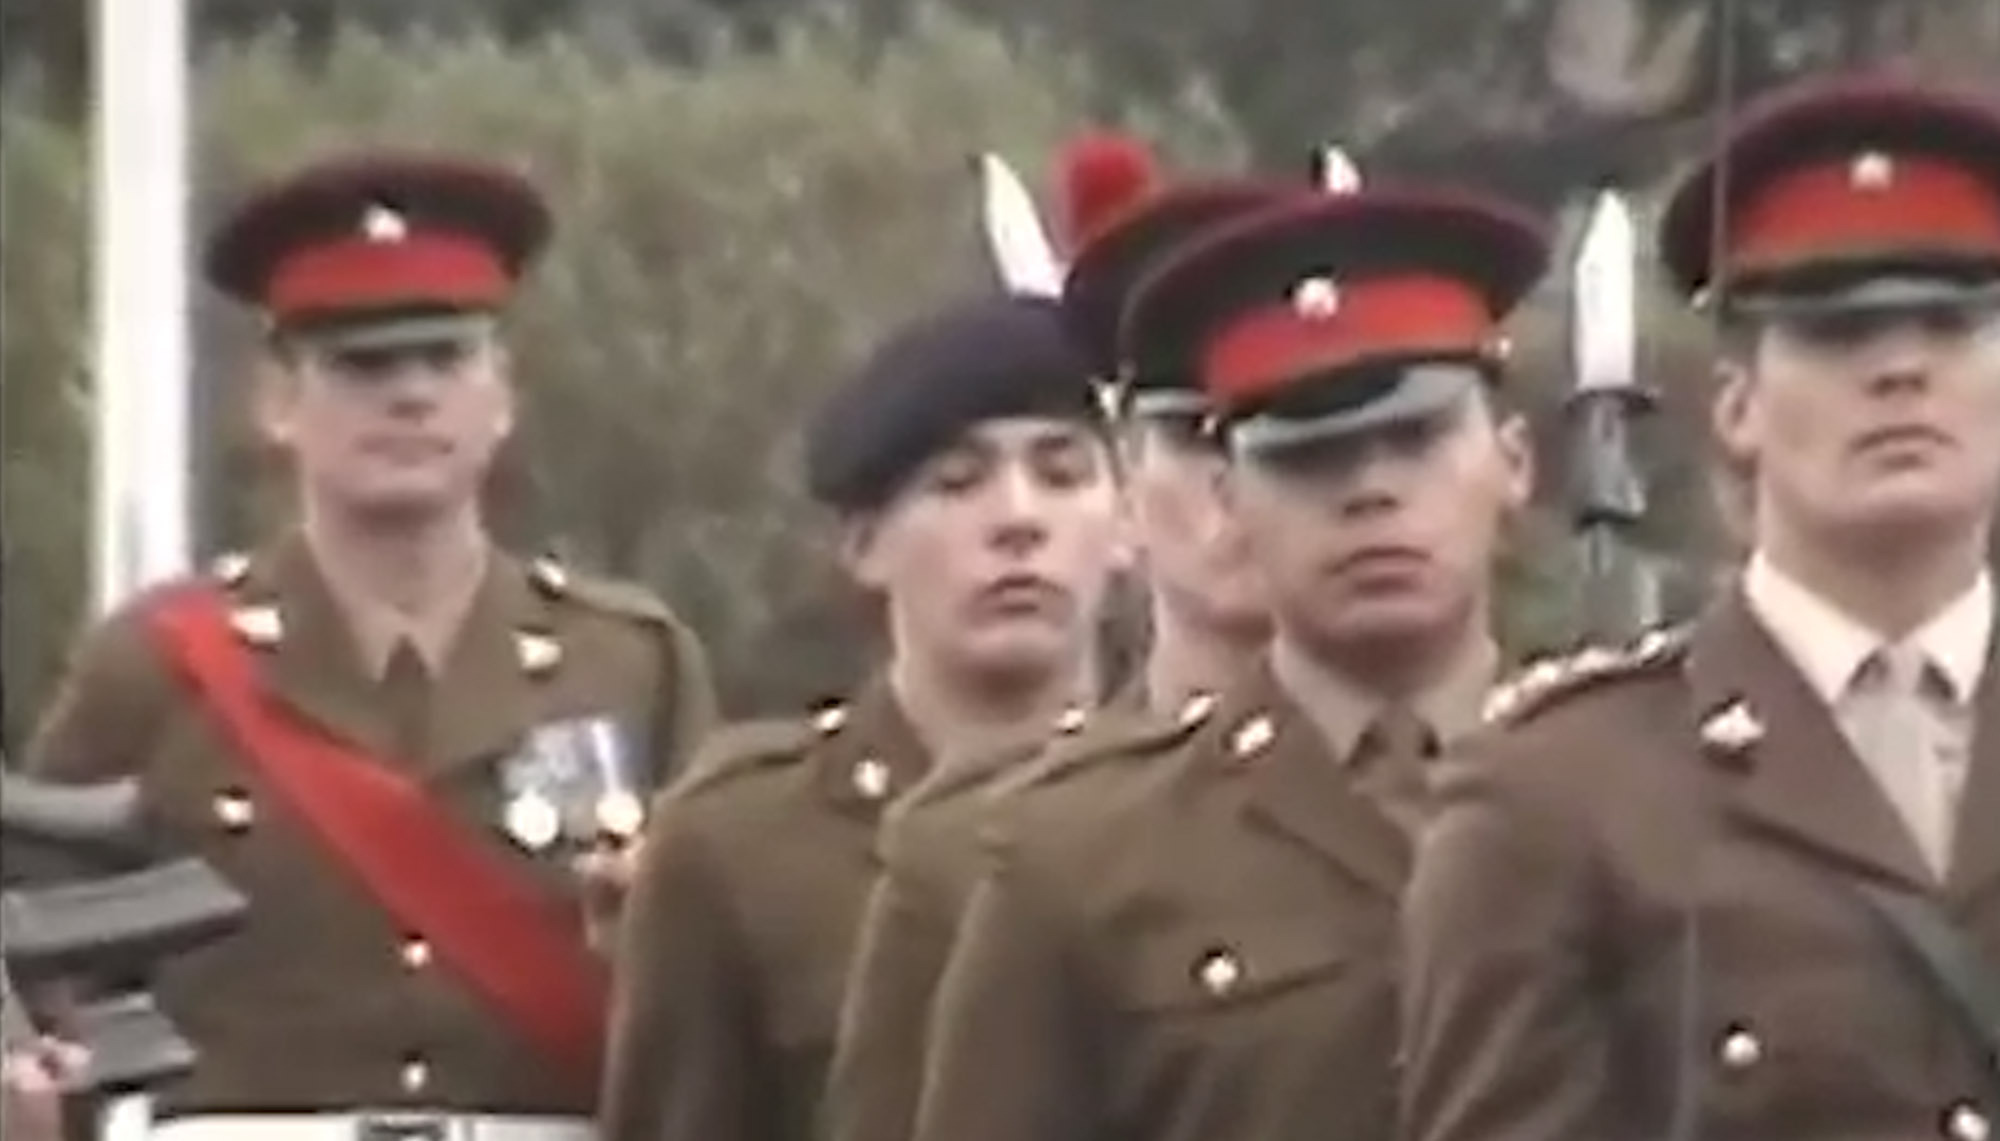 Family video of Fusilier Lee Rigby (centre).